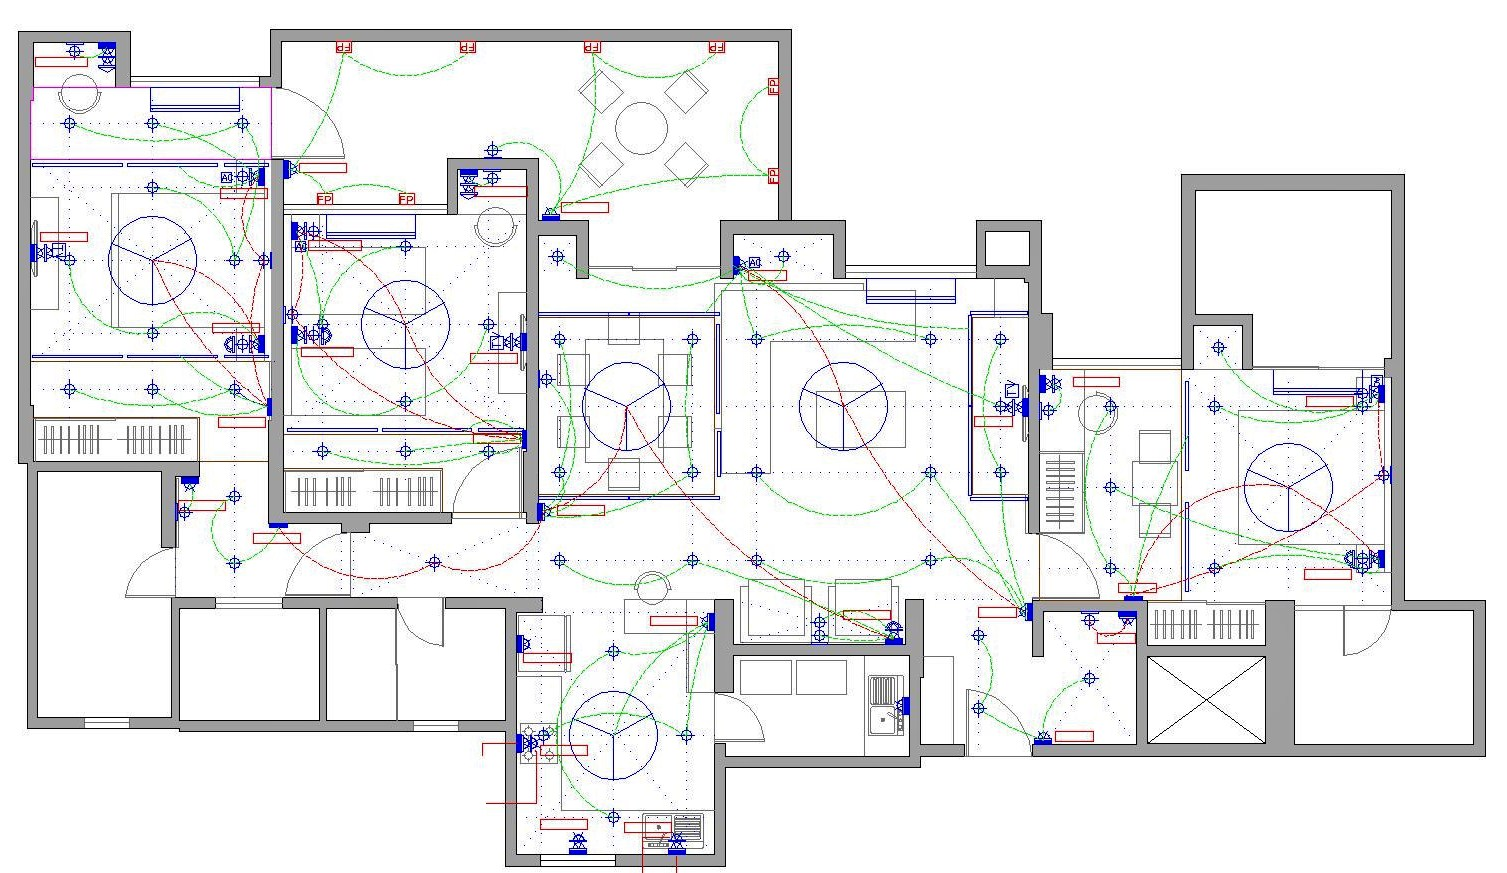 Wiring Diagram Kitchen On Wiring Images Free Download Images